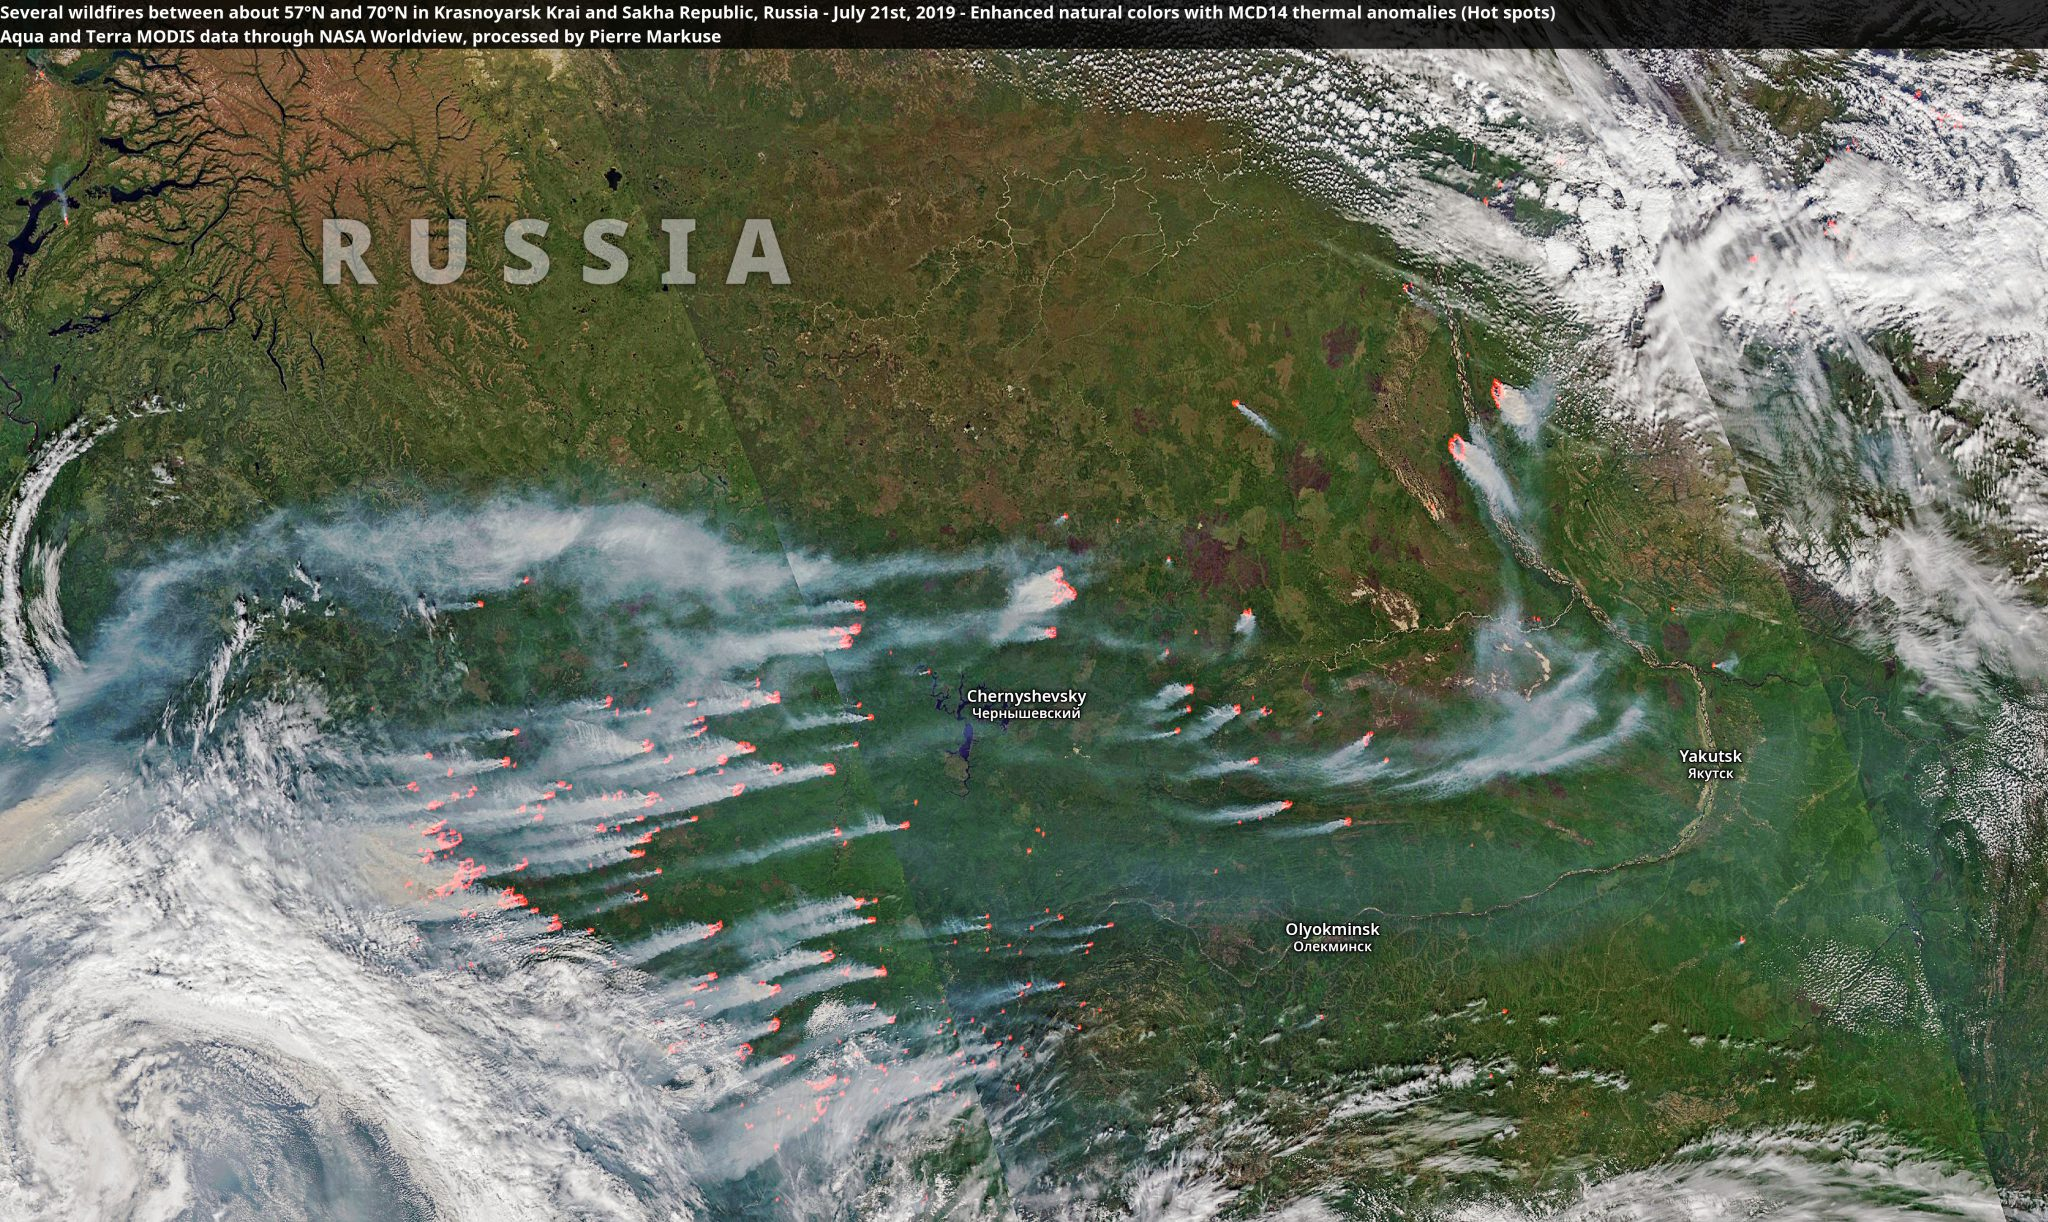 desc:Several wildfires between about 57°N and 70°N in Krasnoyarsk Krai and Sakha Republic, Russia